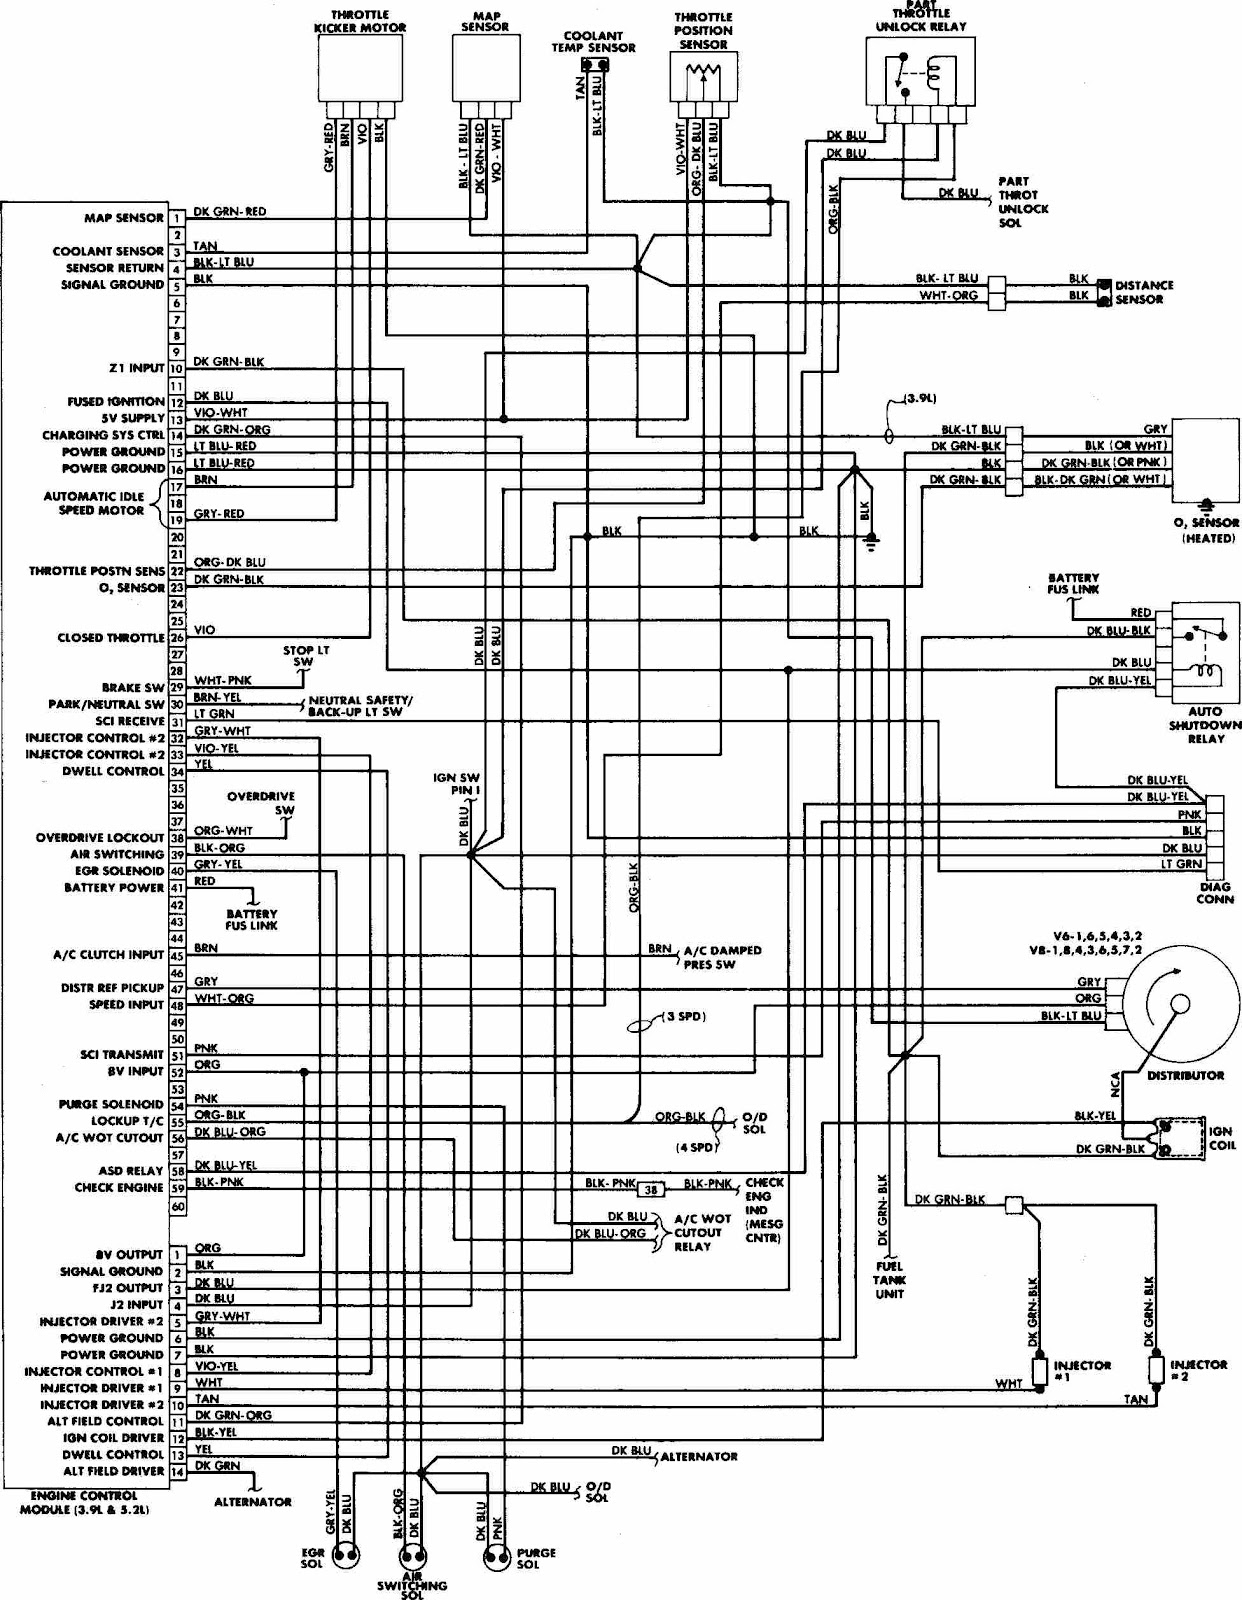 1973 Dodge Truck 318 Engine Schematic, 1973, Free Engine